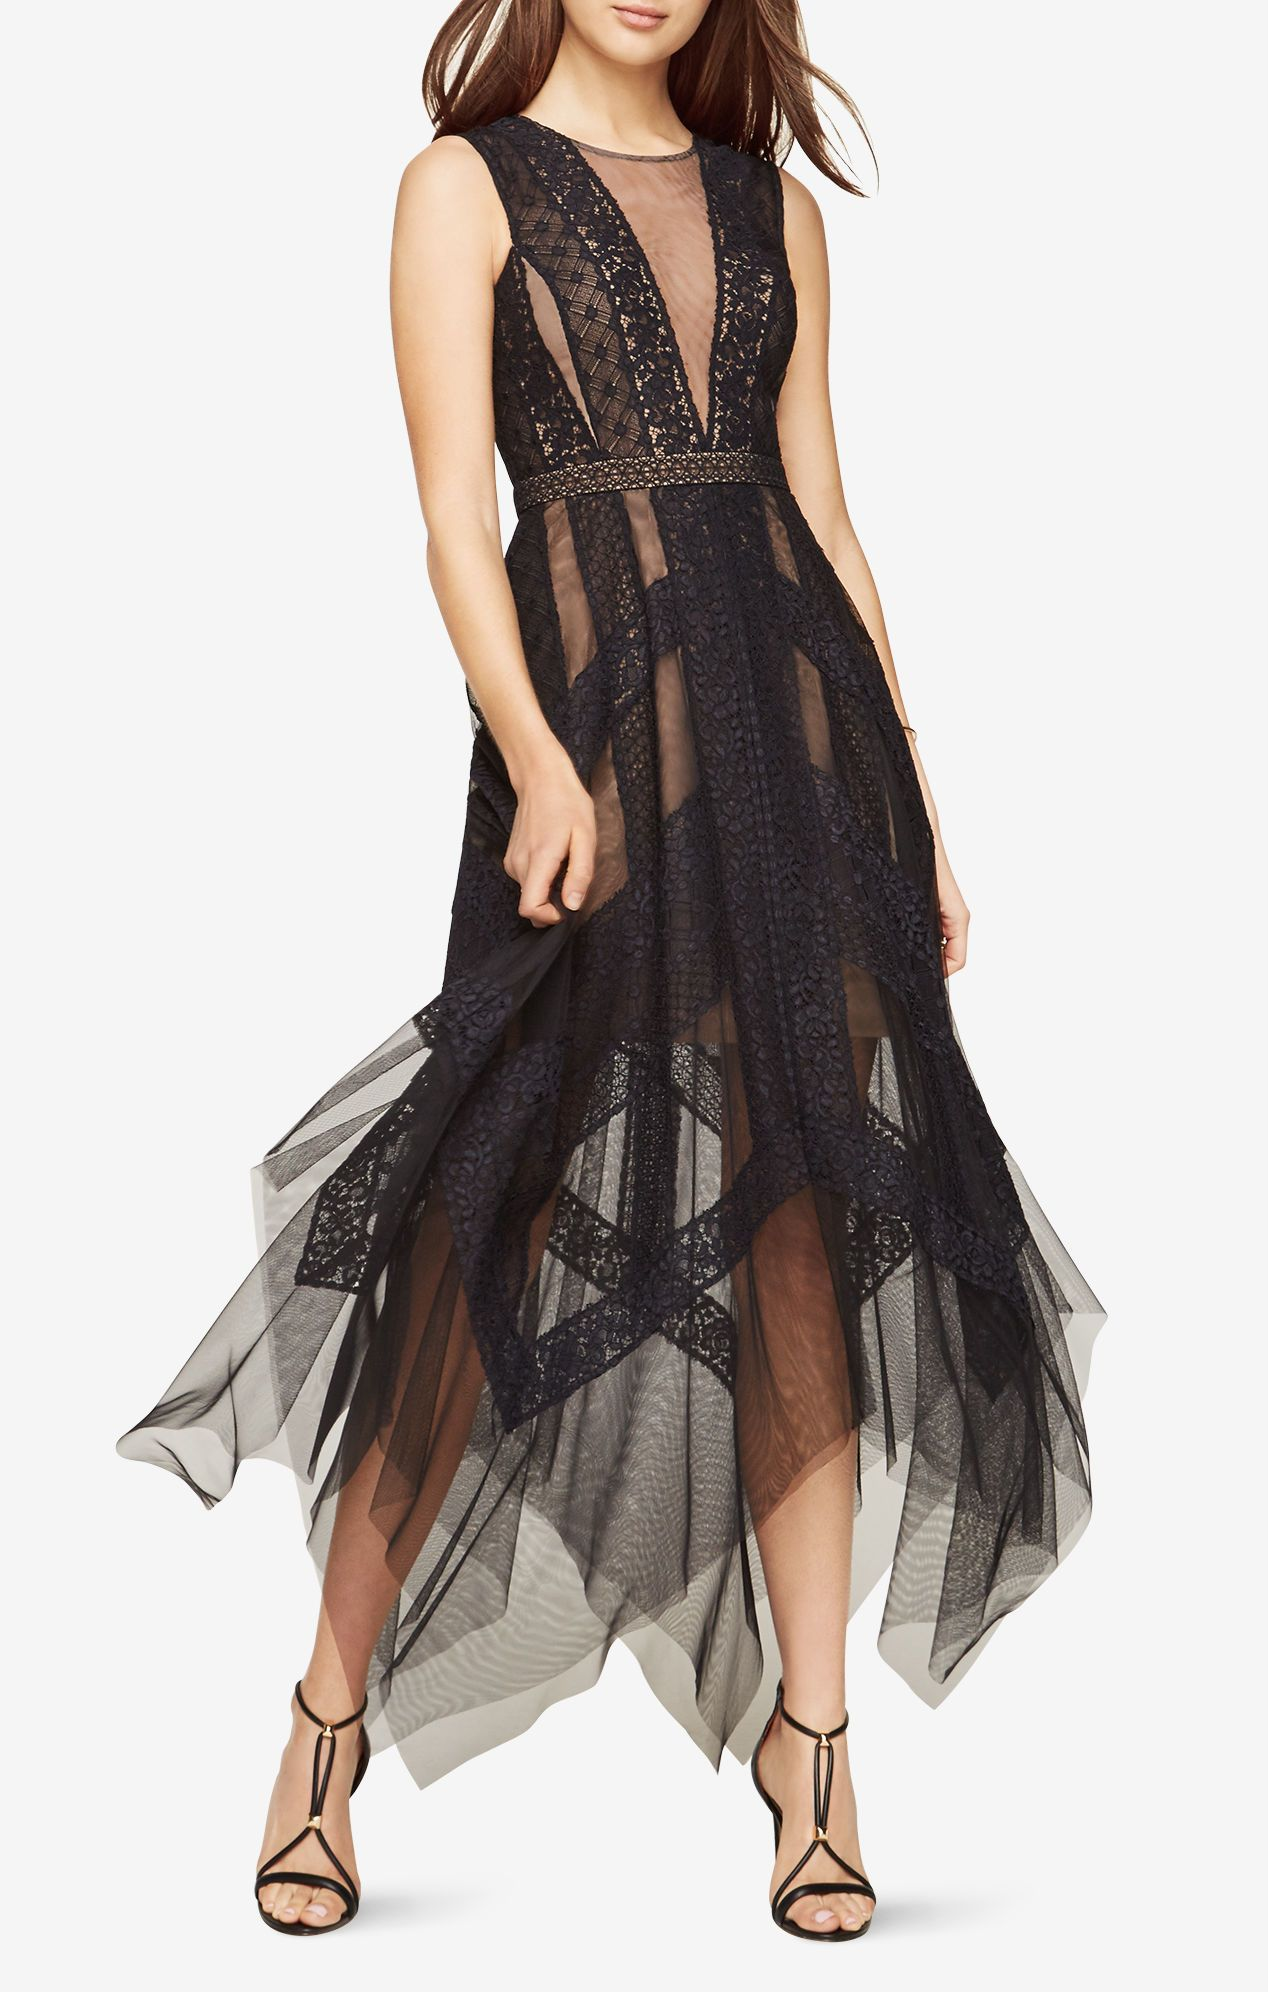 77d81a1d56a10 Andi Lace Dress   things that should be in my possession   Dresses ...